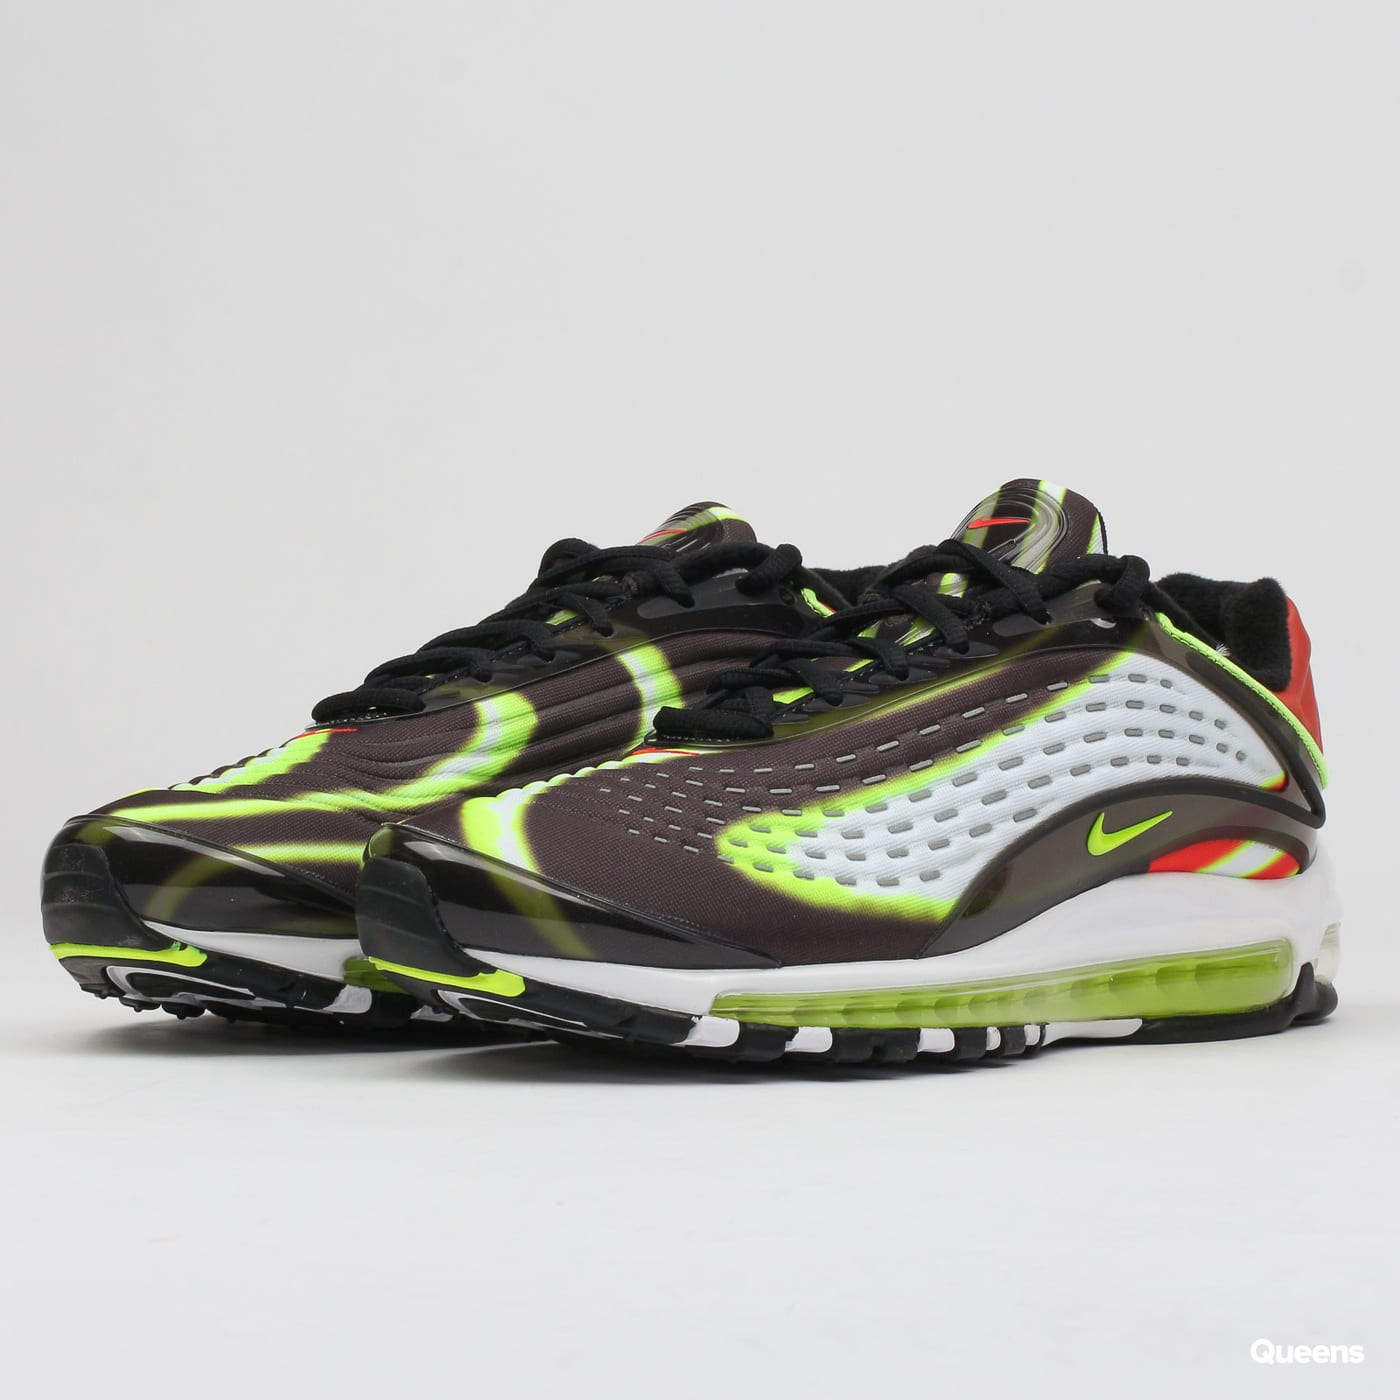 c1f56fe6d1 Sneakers Nike Air Max Deluxe black / volt - habanero red - white (AJ7831-003)  – Queens 💚